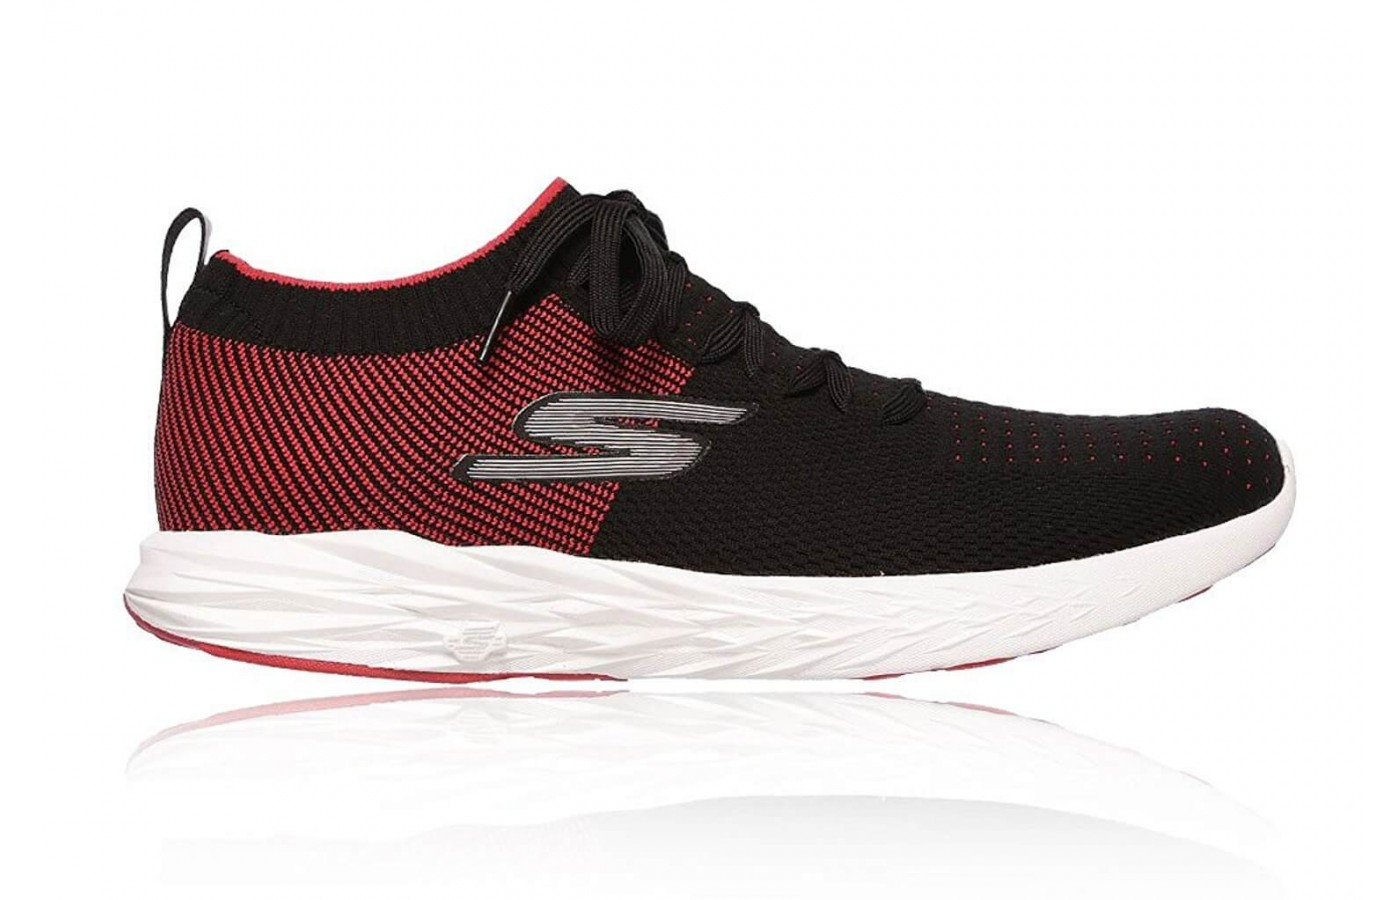 The Skechers GoRun 6 features reflective detailing